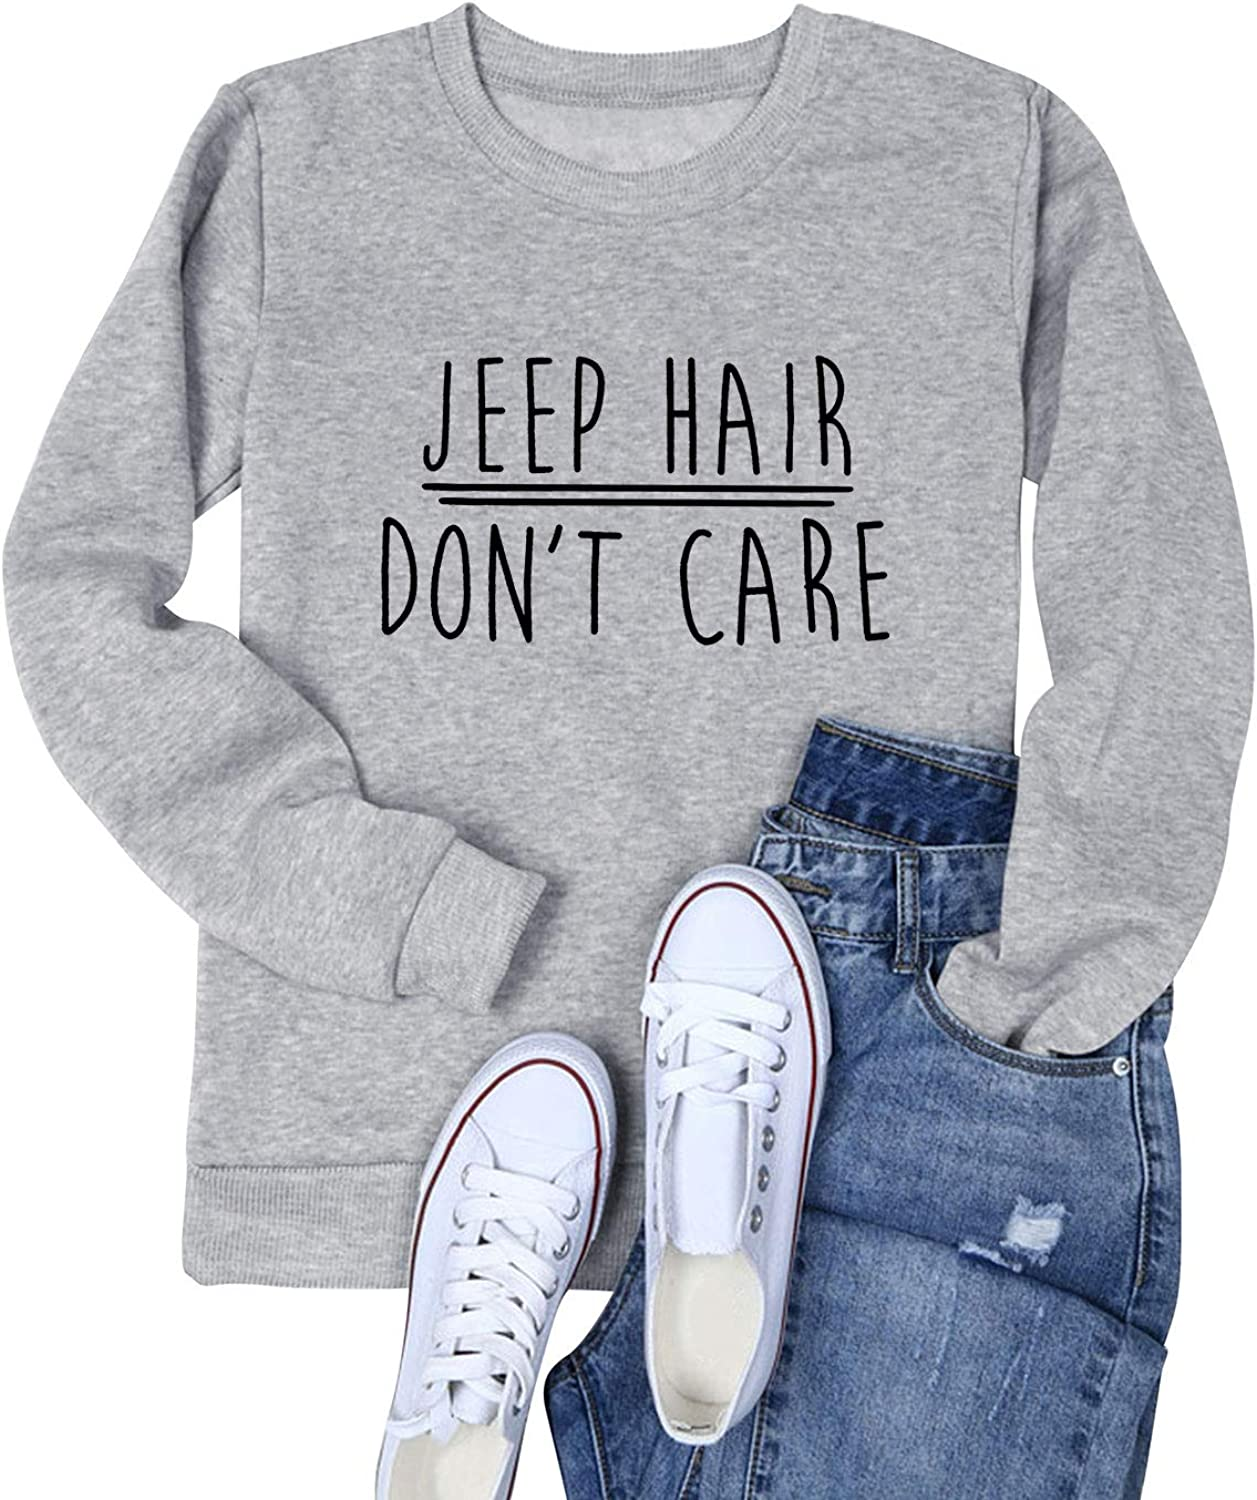 Nlife Women Jeep Hair Don't Care Letter Casual Sweatshirts Long Sleeve Blouse